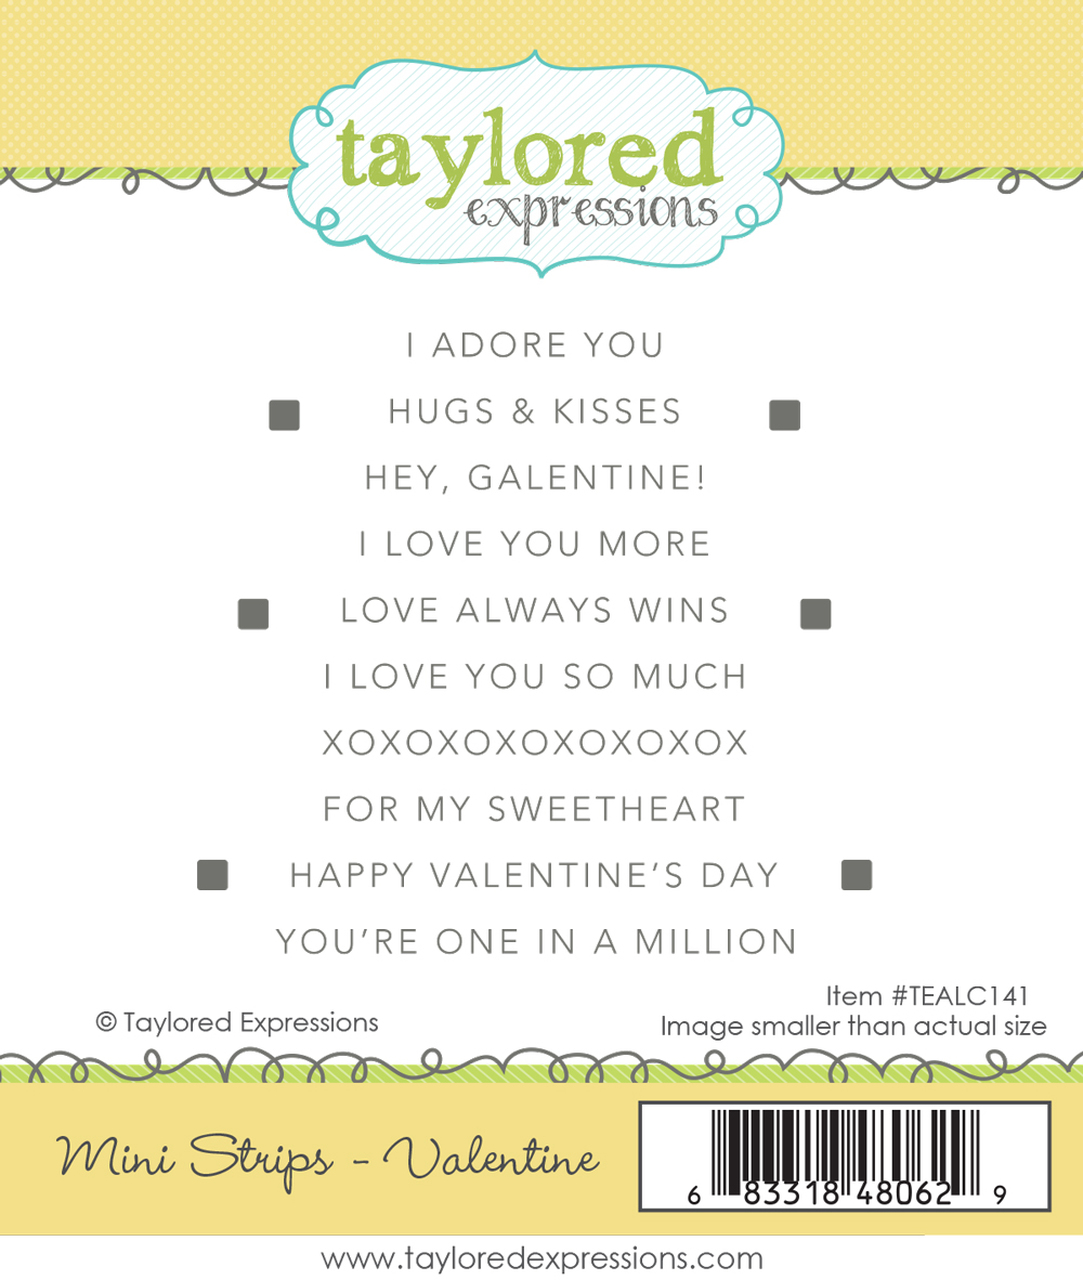 Taylored Expression - Mini Strips - Valentine